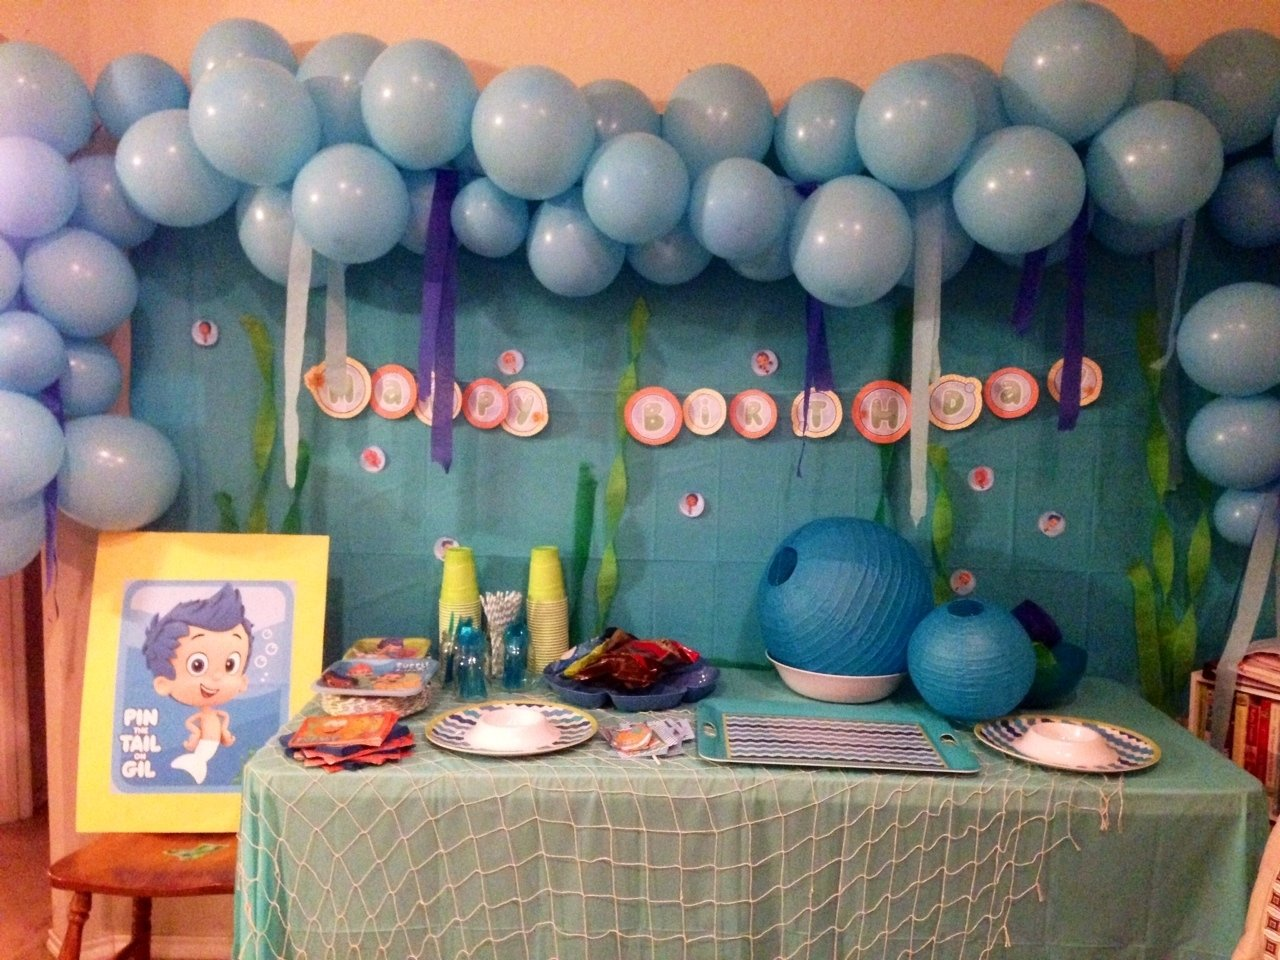 10 Fashionable Bubble Guppie Birthday Party Ideas ideas bubble guppies birthday party bubble guppies 1st birthday